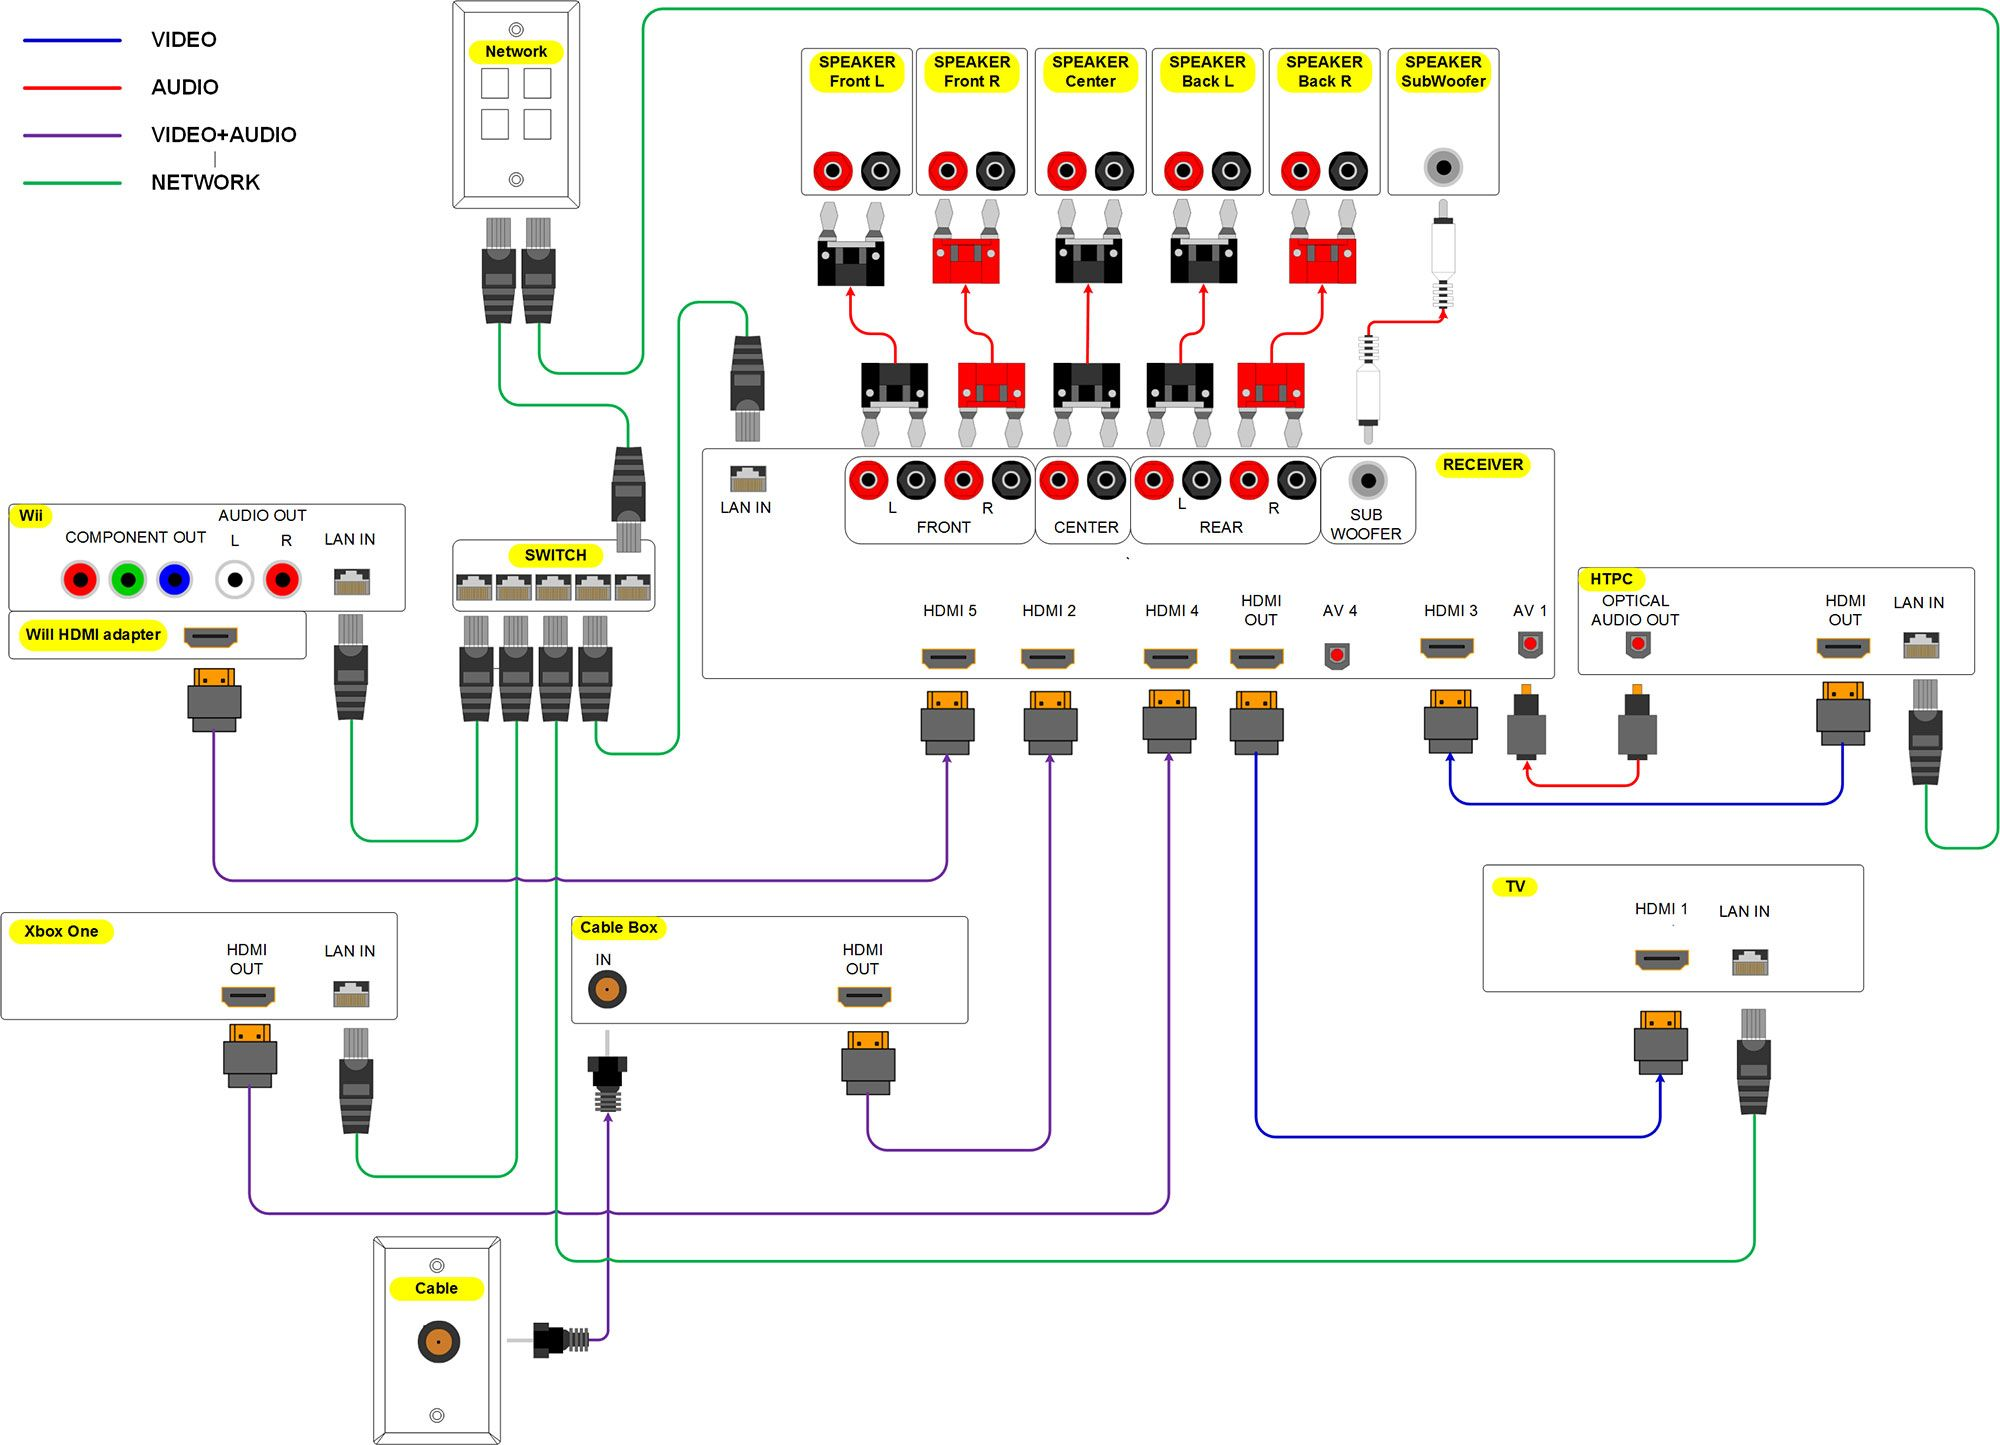 home stereo system wiring diagram meetcolab home stereo system wiring diagram home theater wiring diagram click it to see the